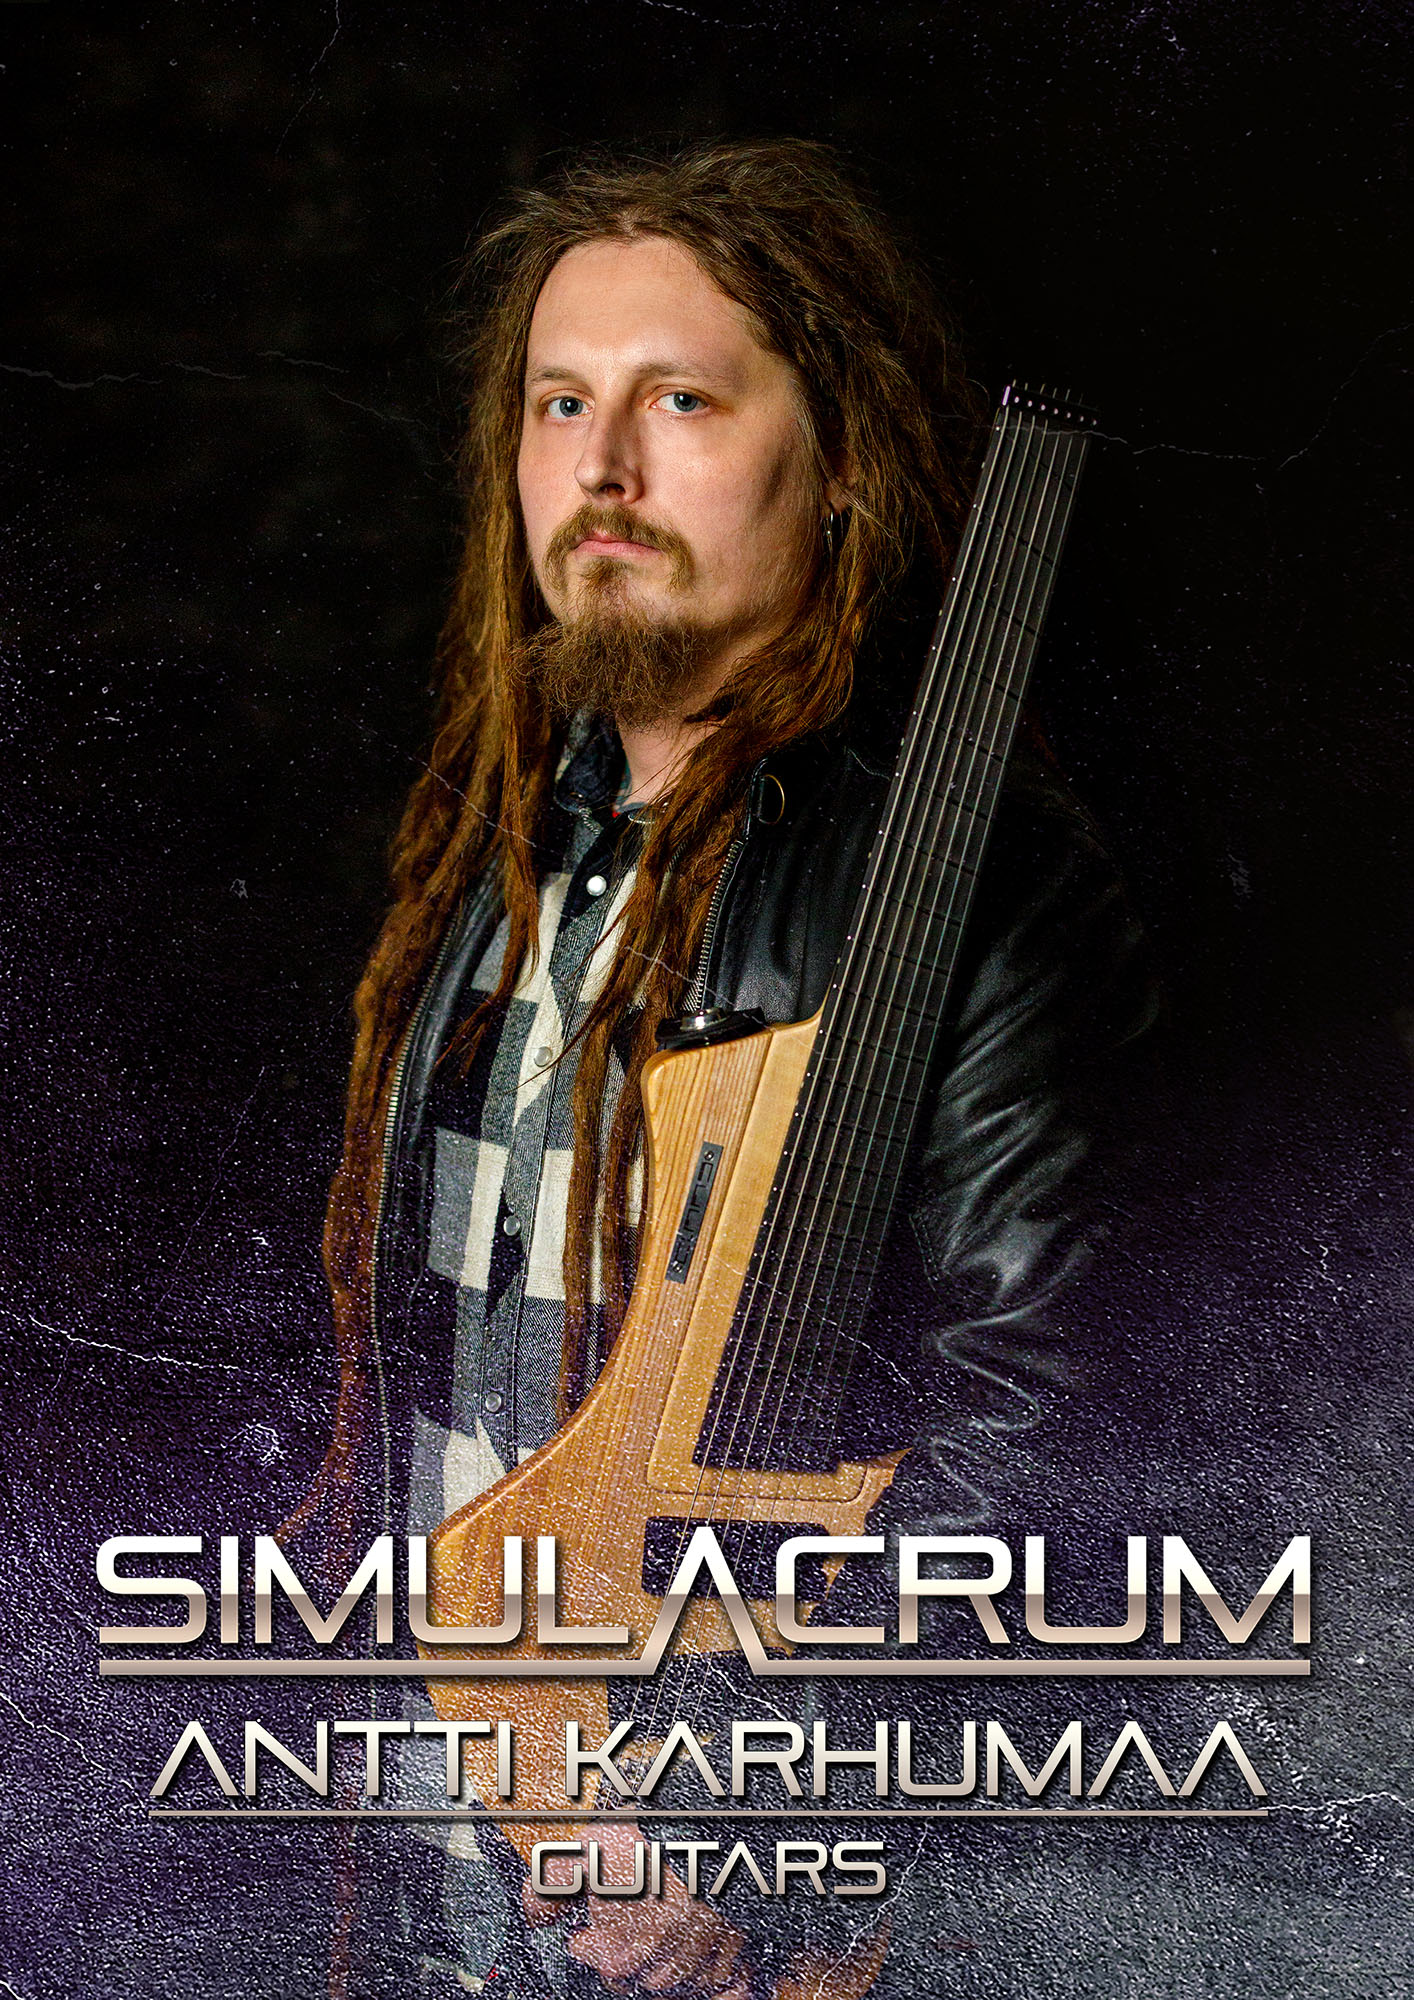 Simulacrum part with guitarist Petri Mäkila and welcome Antti Karhumaa to the band.